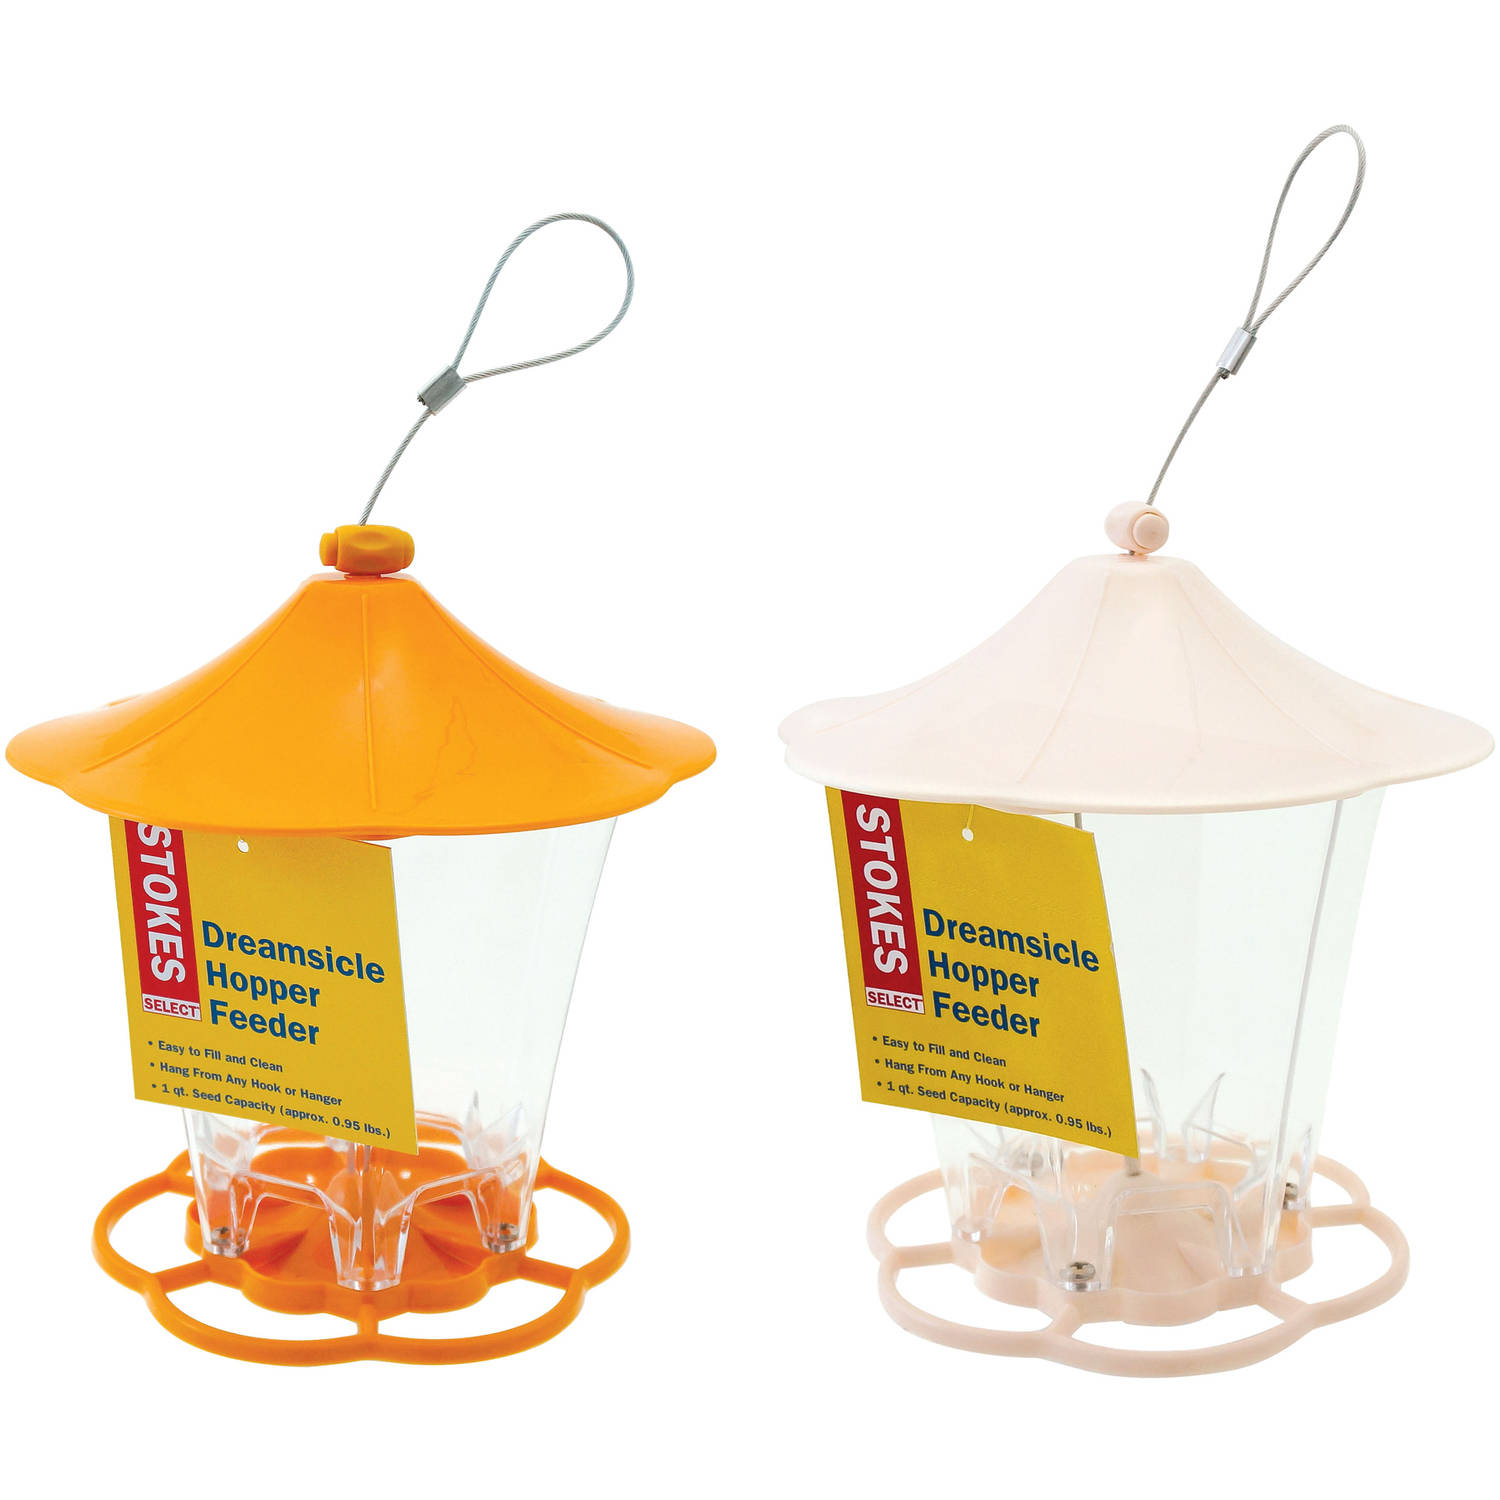 Stokes Select Dreamsicle Hopper Bird Feeder with 6 Feeding Ports, .95 lb Capacity